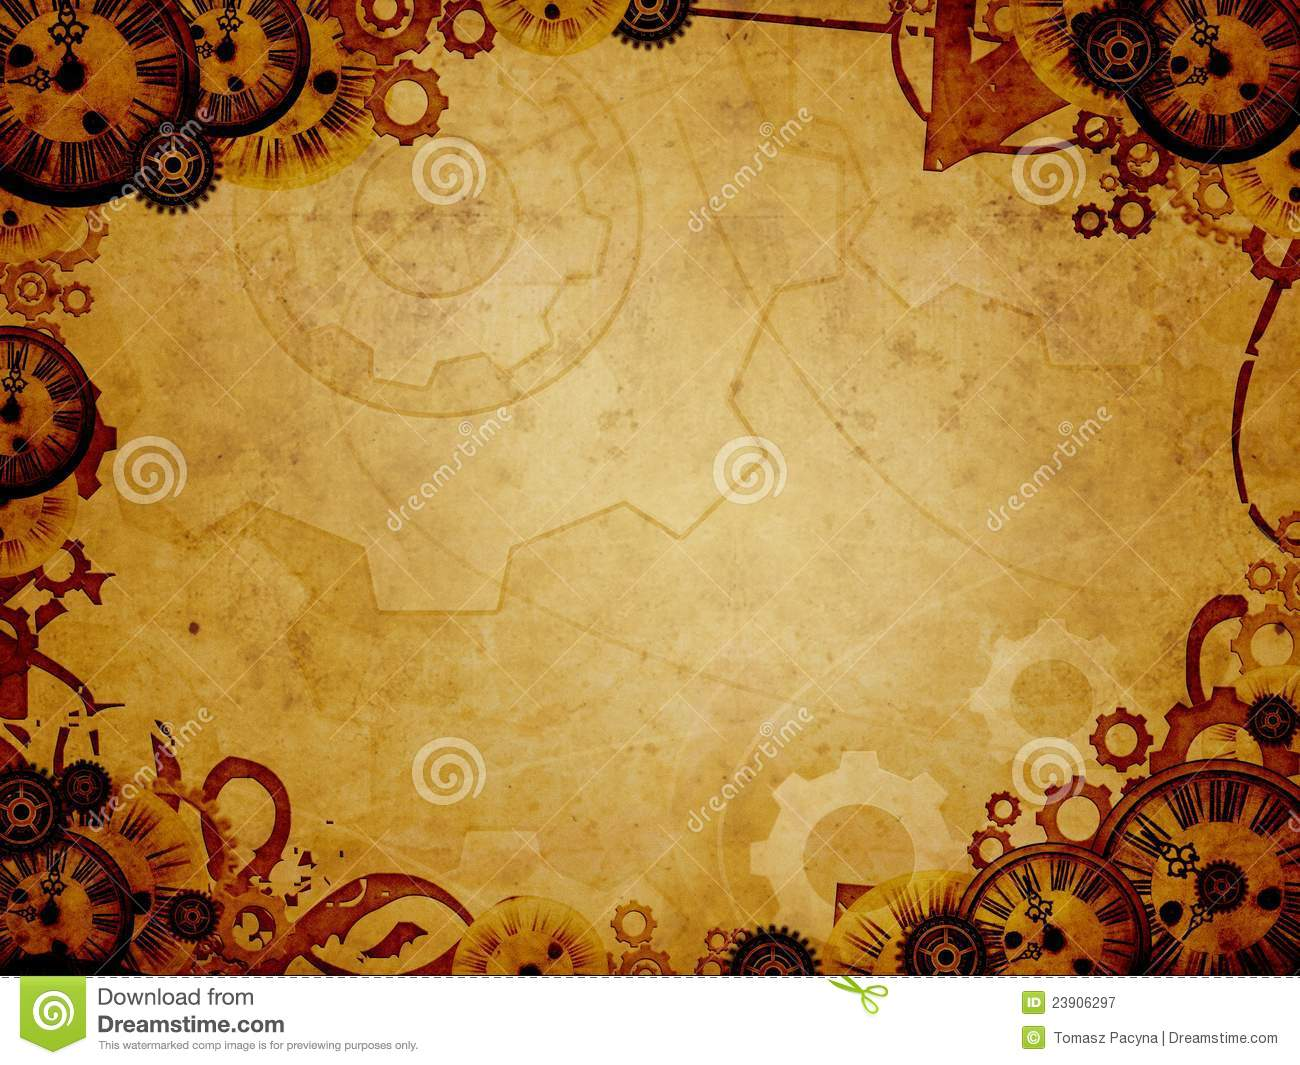 vintage clocks steam punk background stock illustration